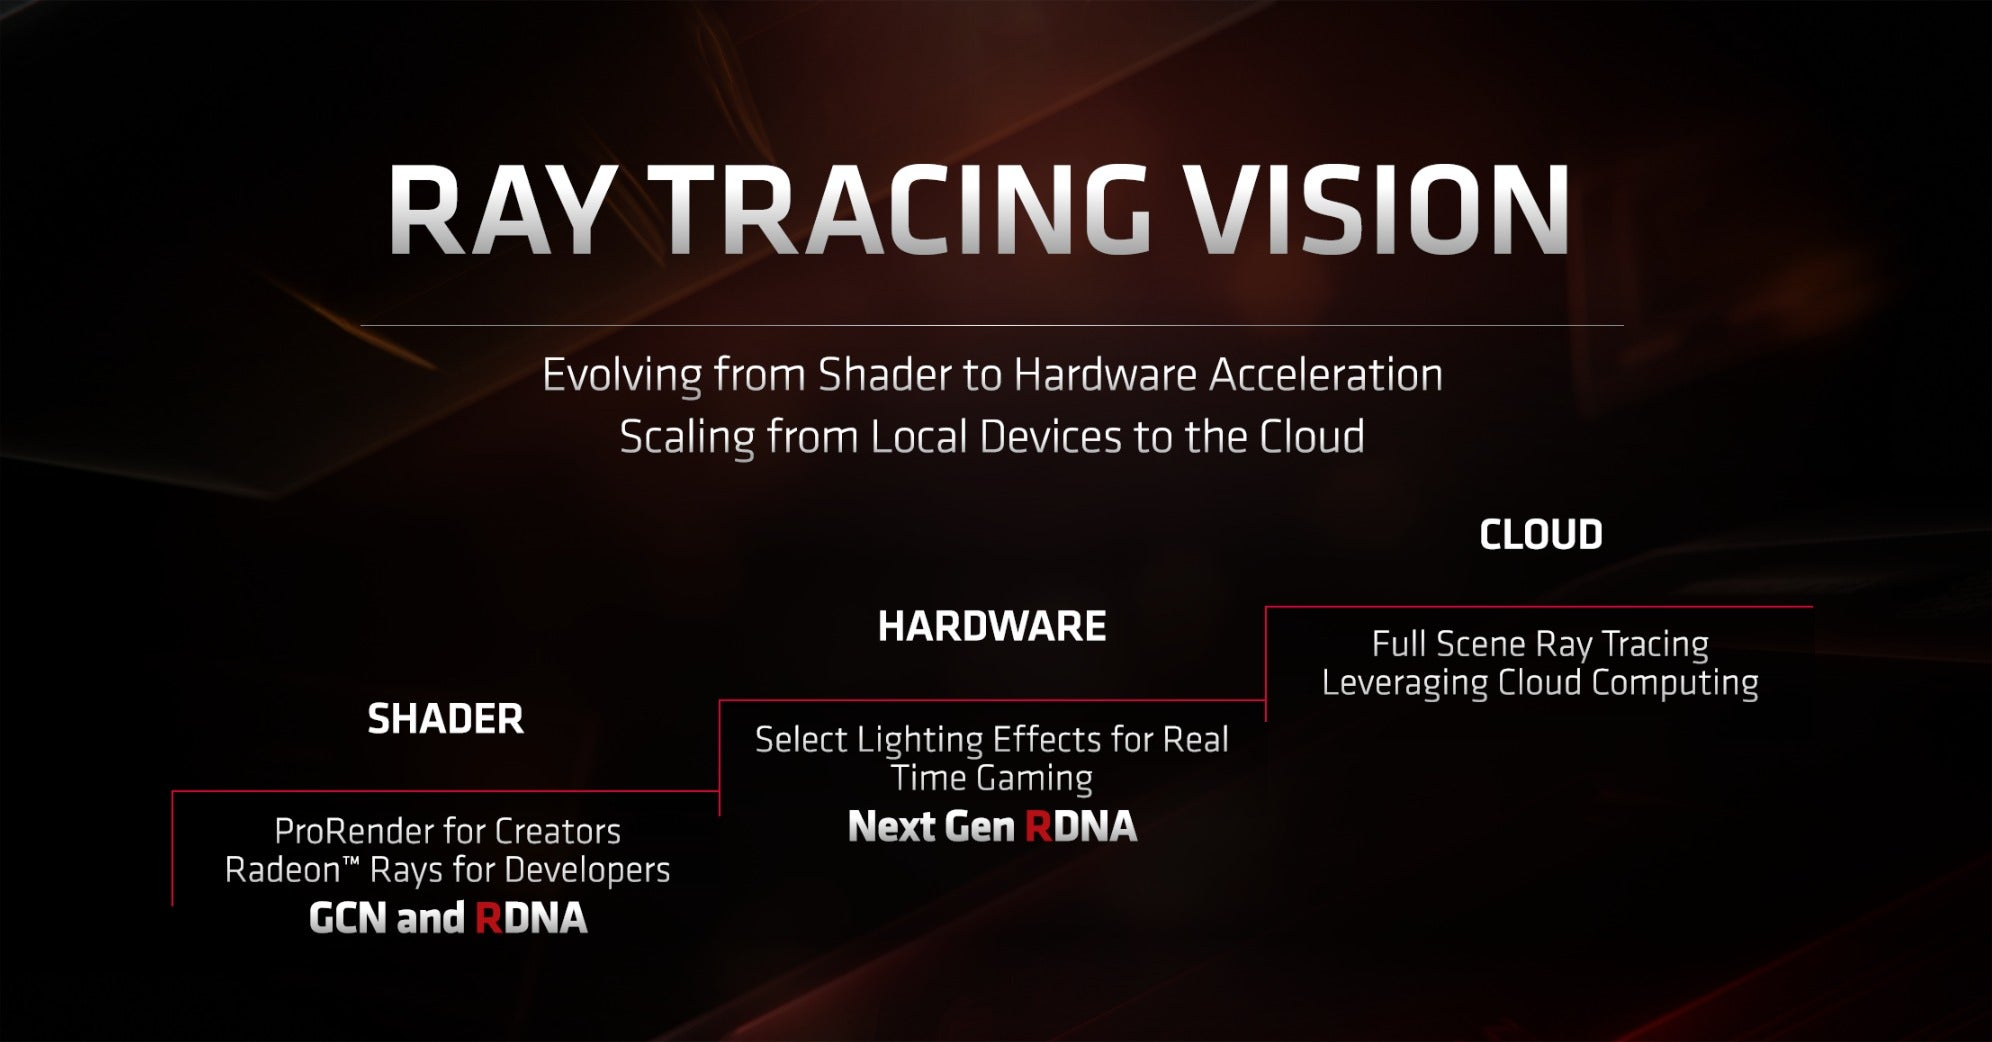 AMD's Ray Tracing Strategy : Amd